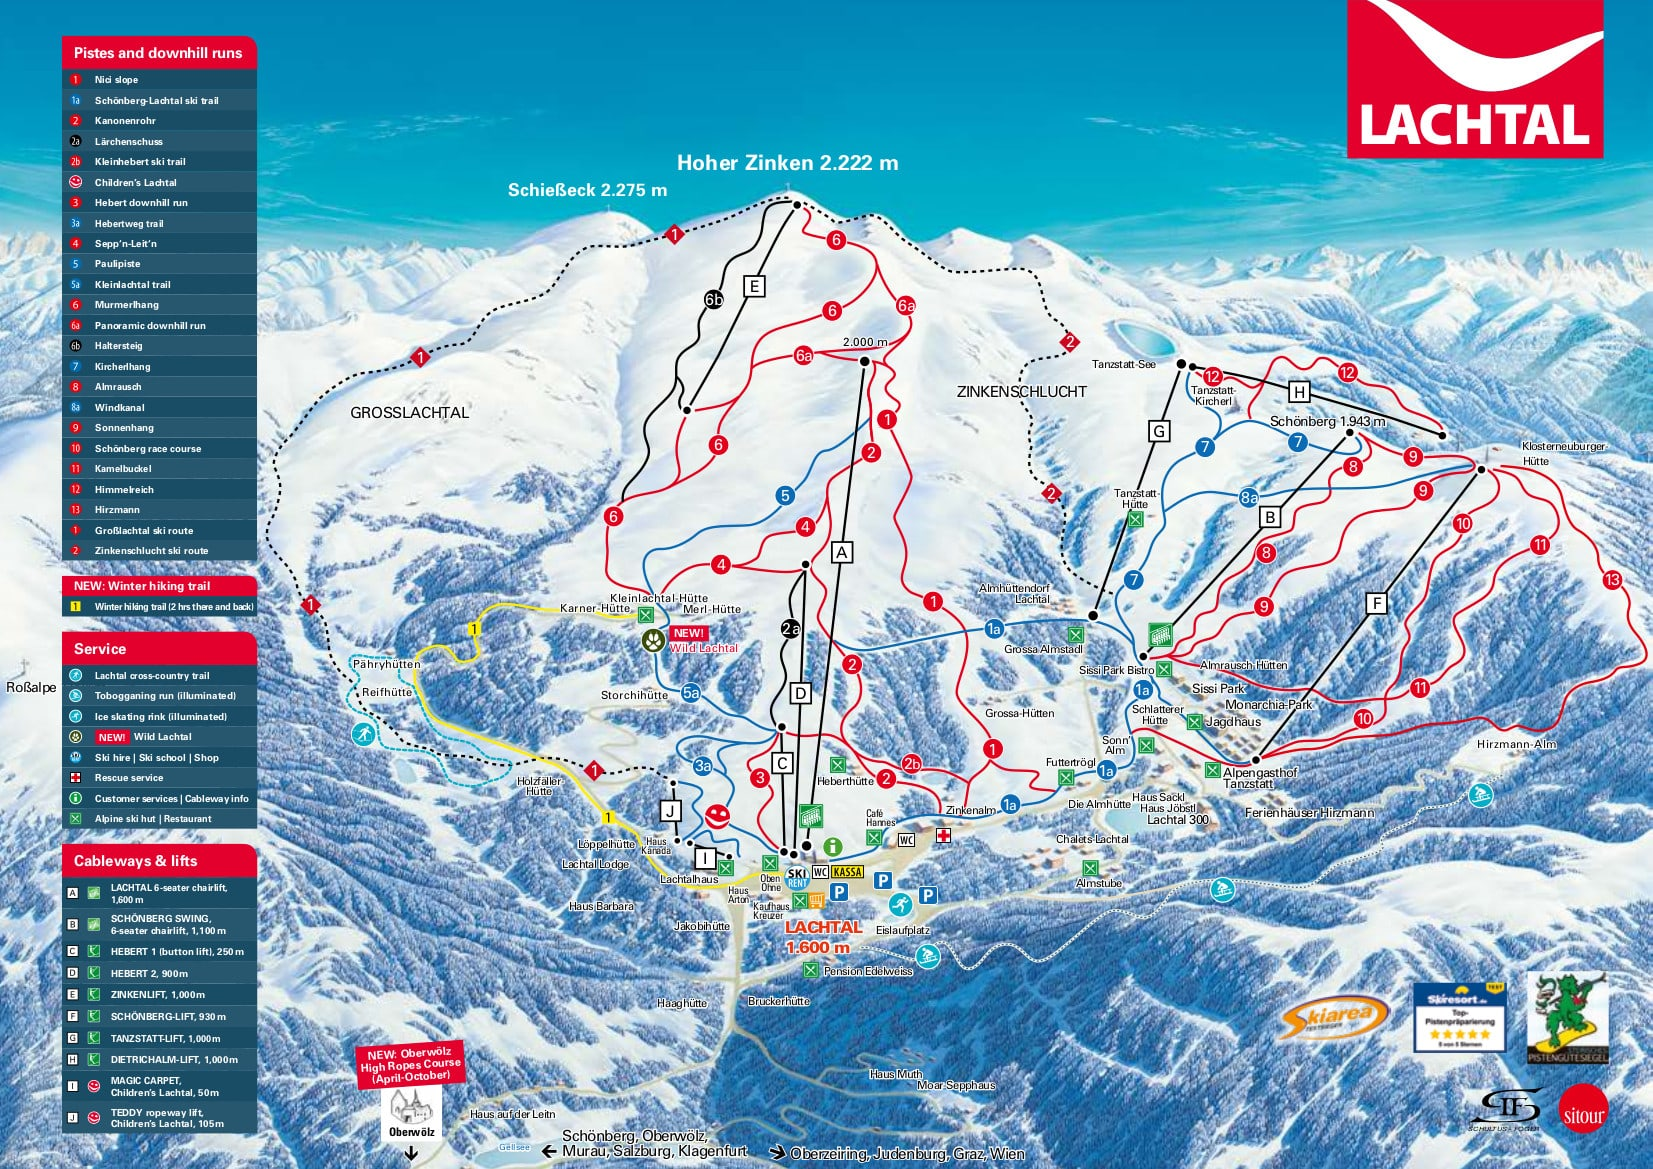 Lachtal Piste / Trail Map